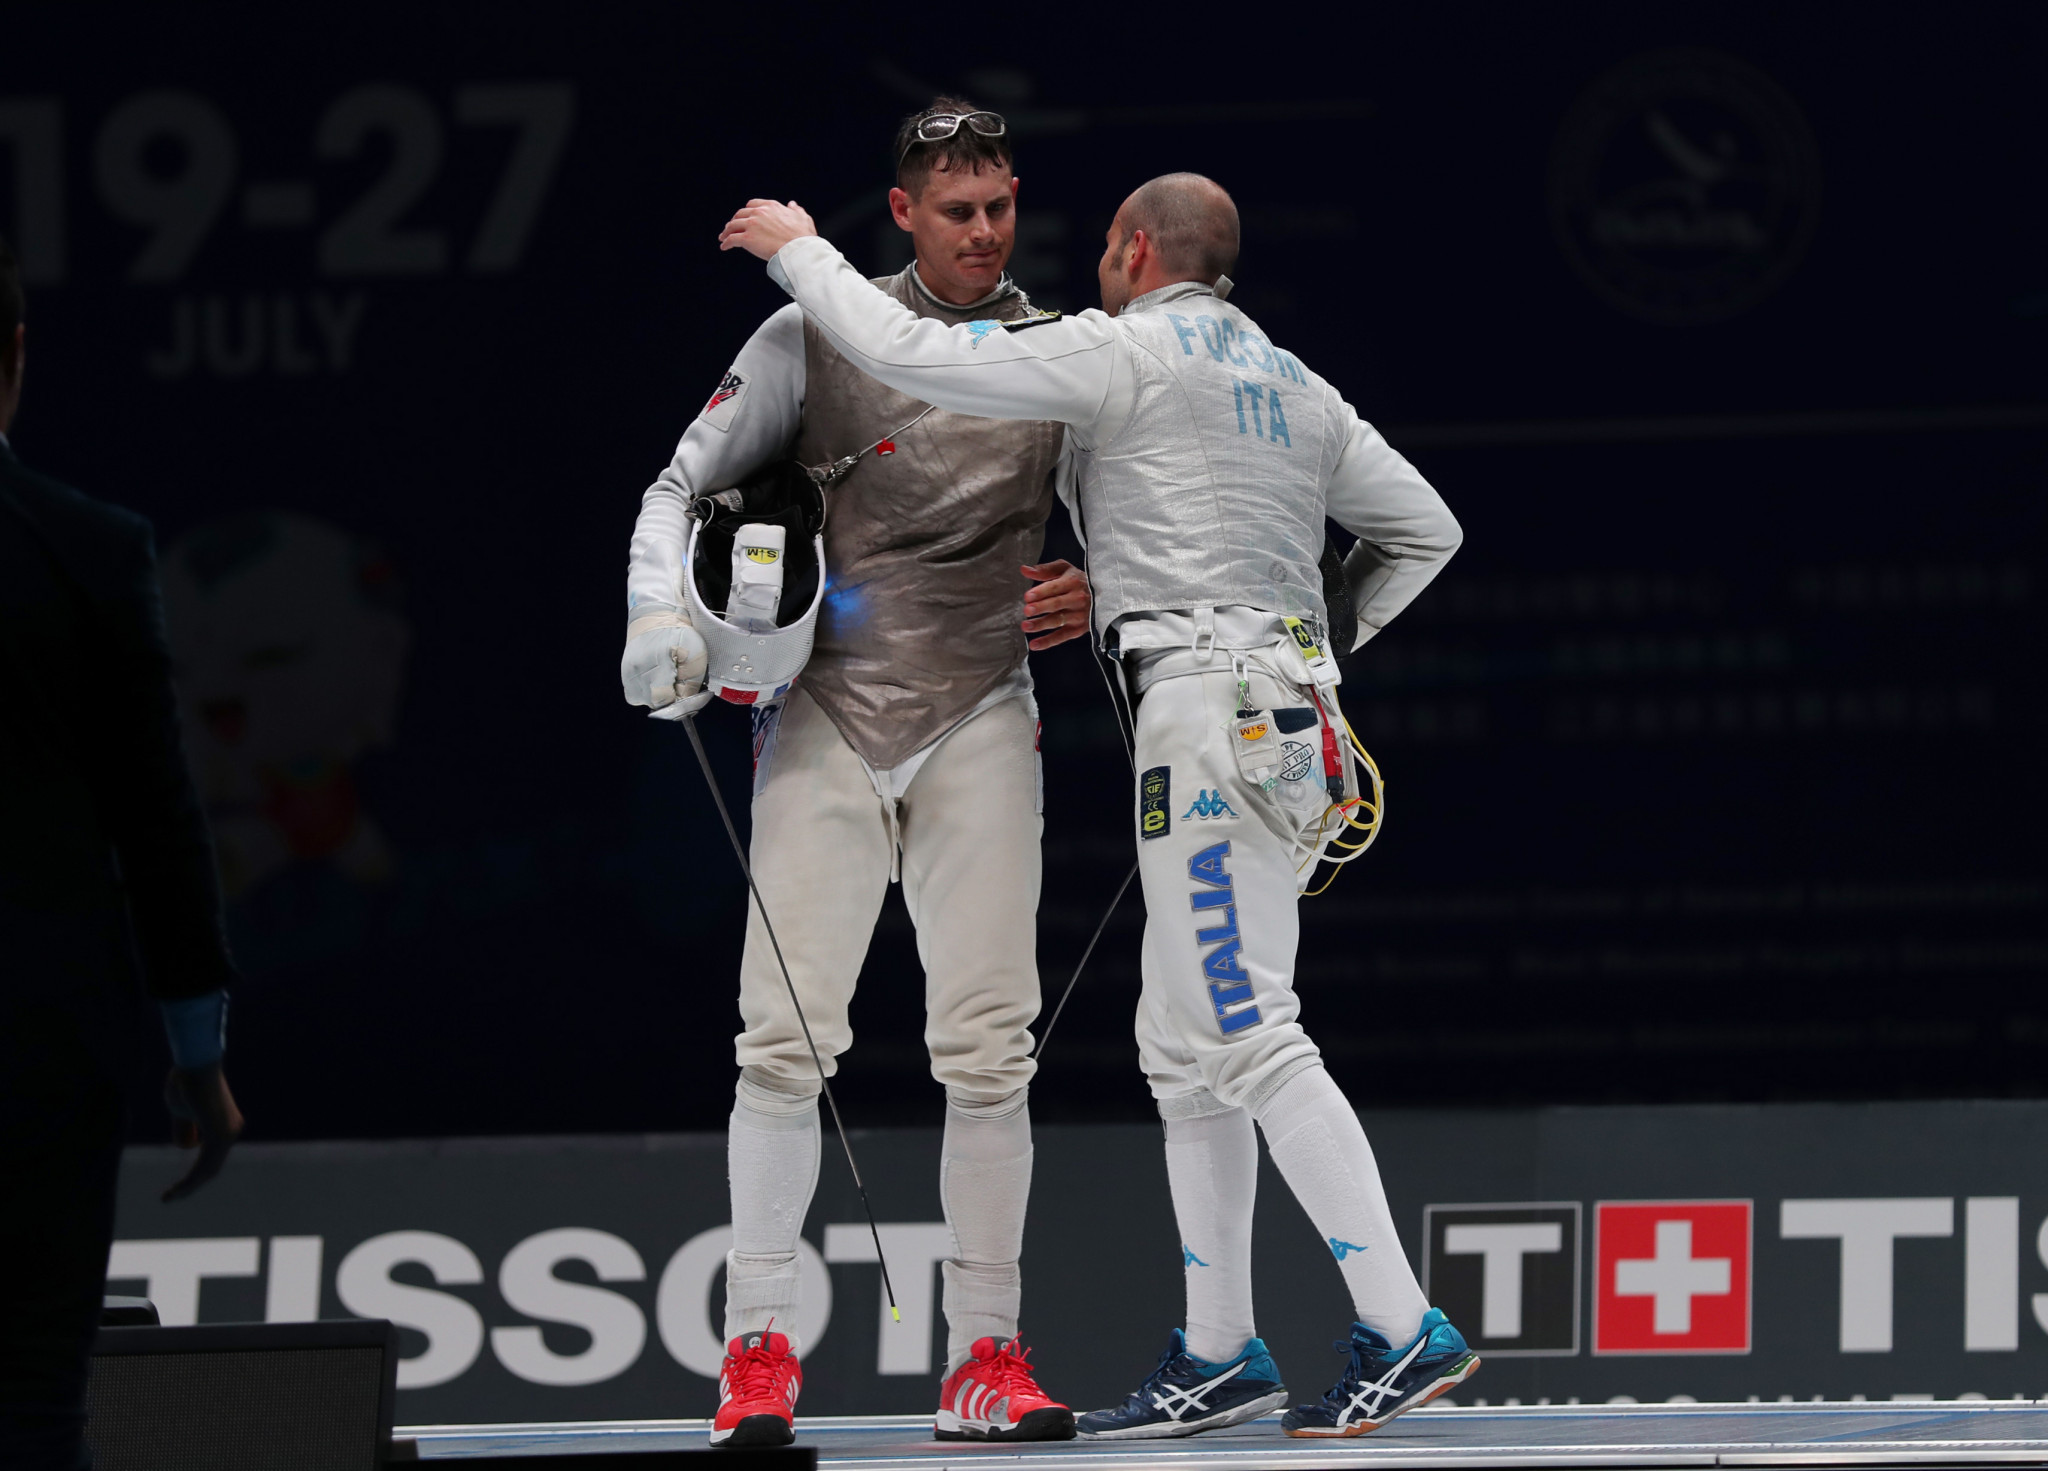 Britain's Kruse wins foil gold at FIE World Cup in Bonn